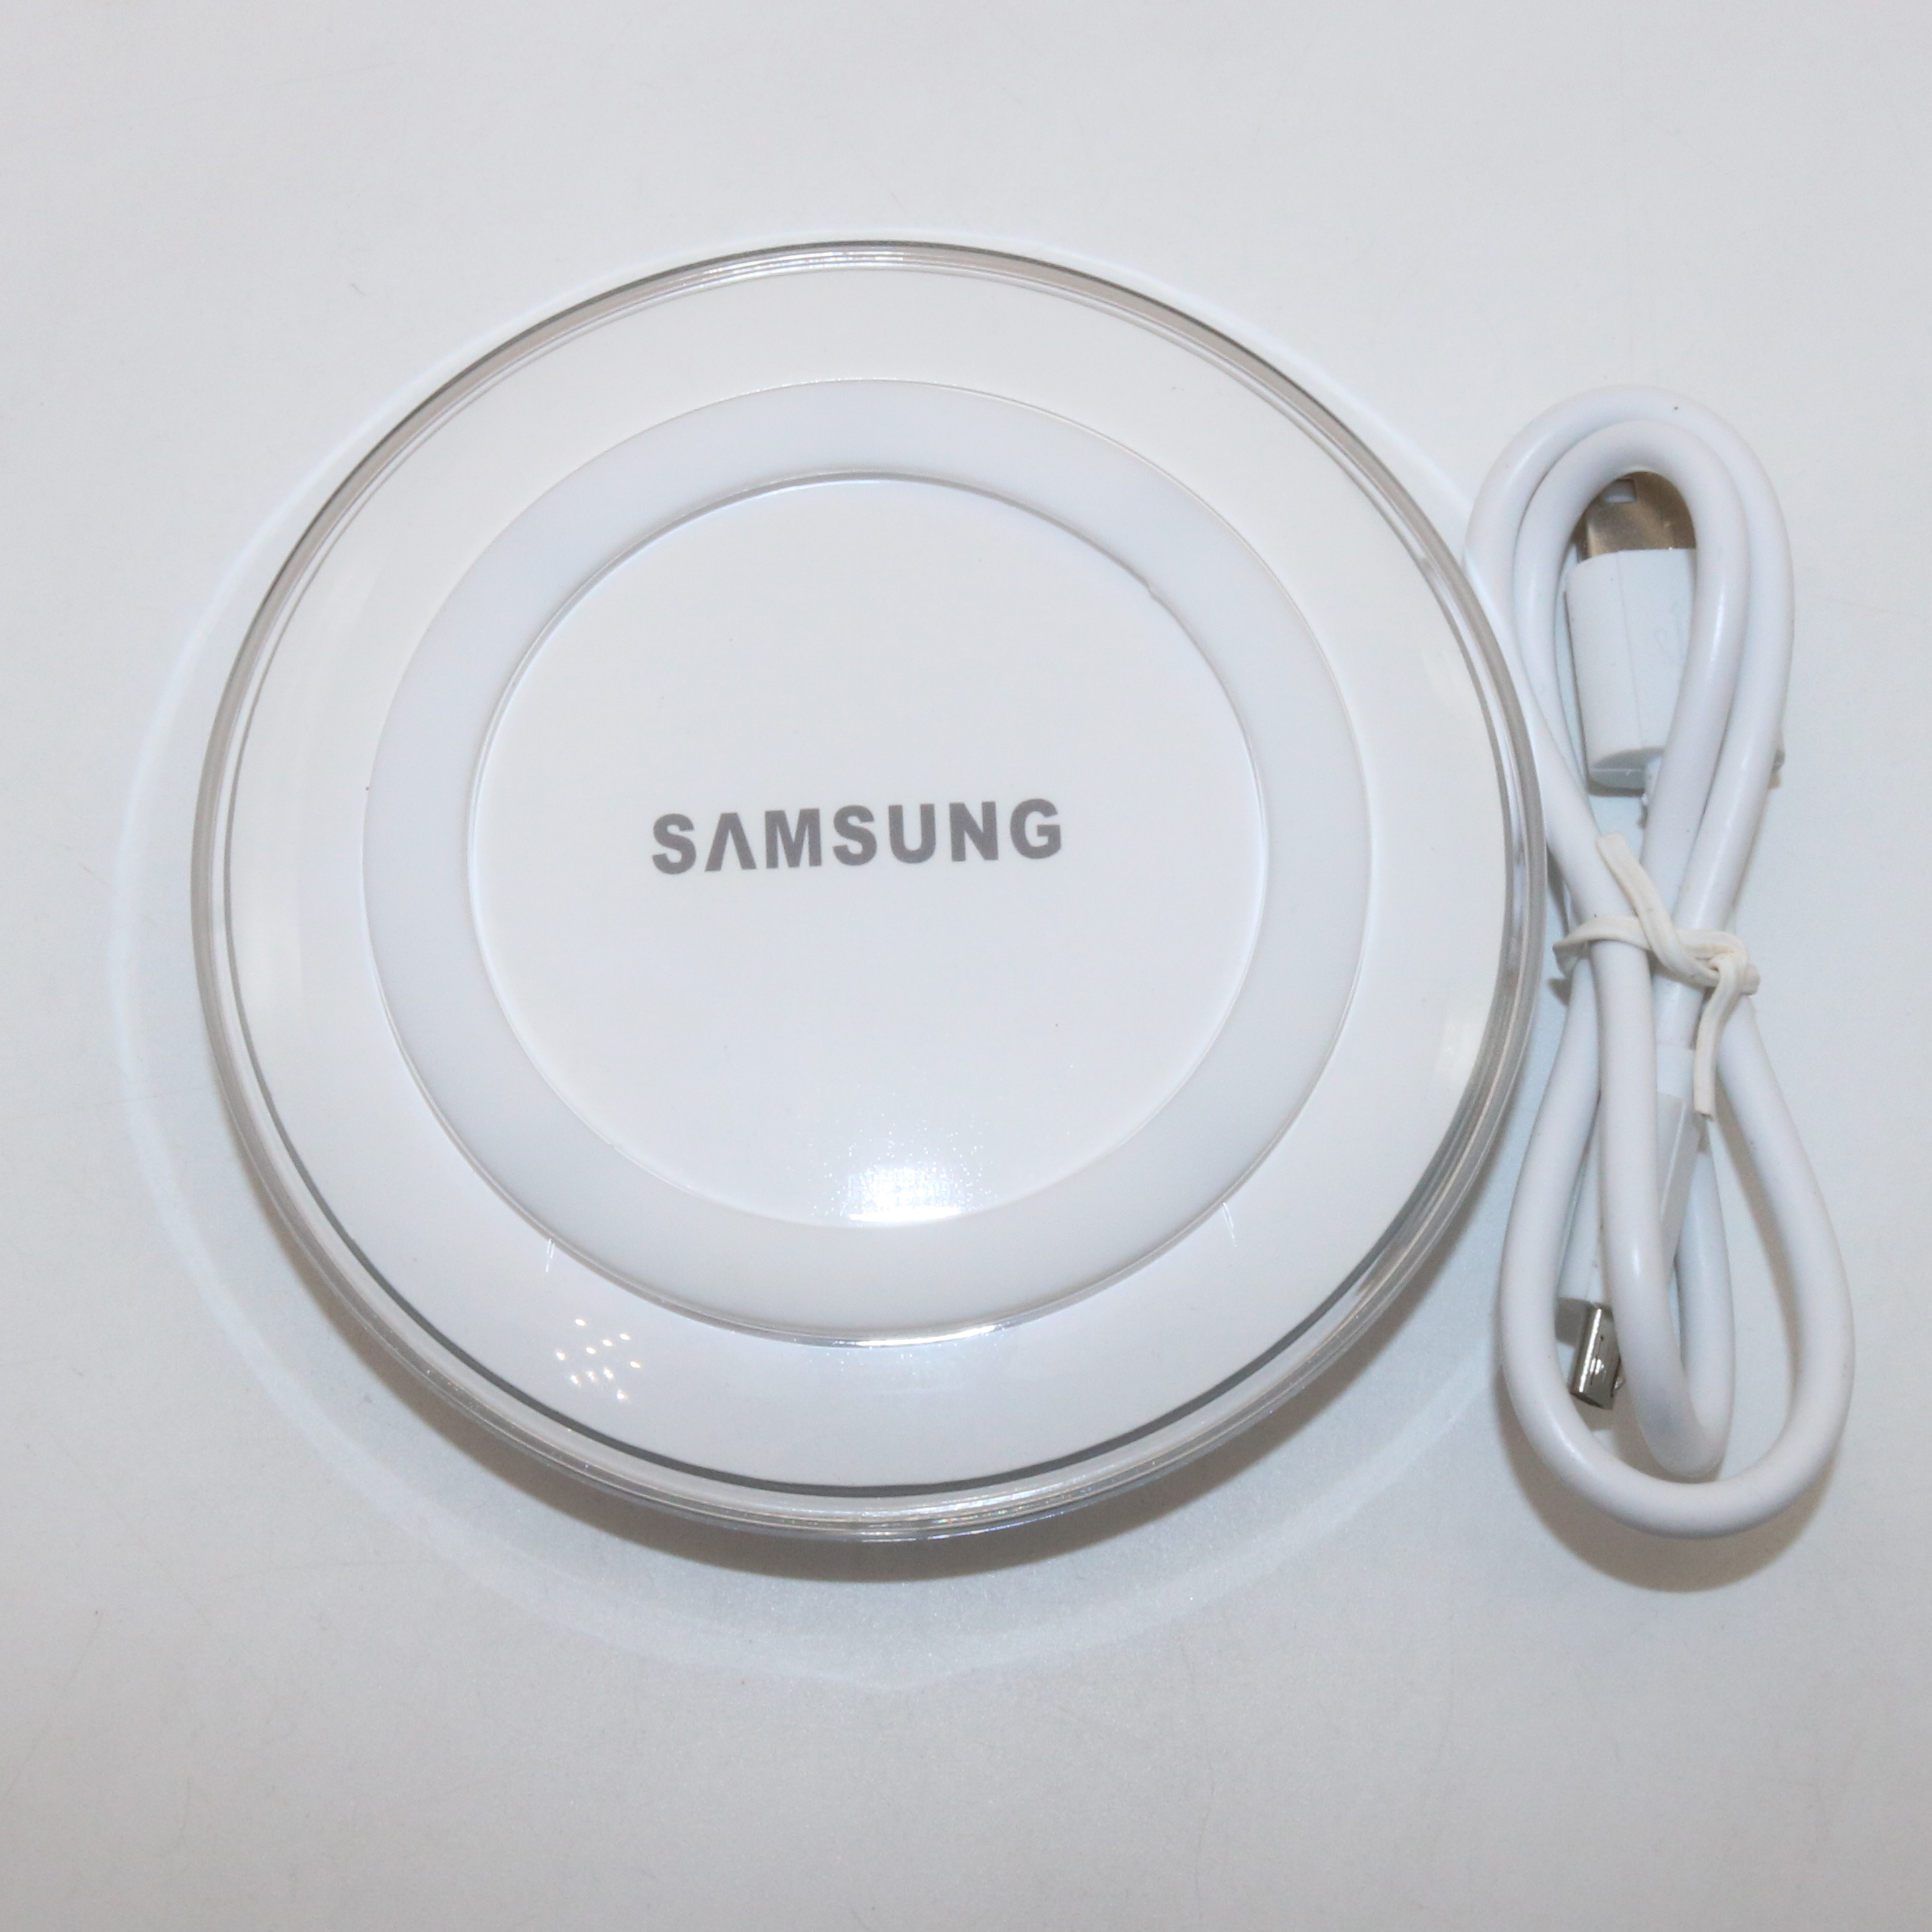 Image 2 - Original Samsung QI Wireless Charger Adapter 5V/2A Charger Pad For Galaxy S7 S6 EDGE S8 S9 S10 Plus Note 4 5 for Iphone 8 XS XR-in Mobile Phone Chargers from Cellphones & Telecommunications on